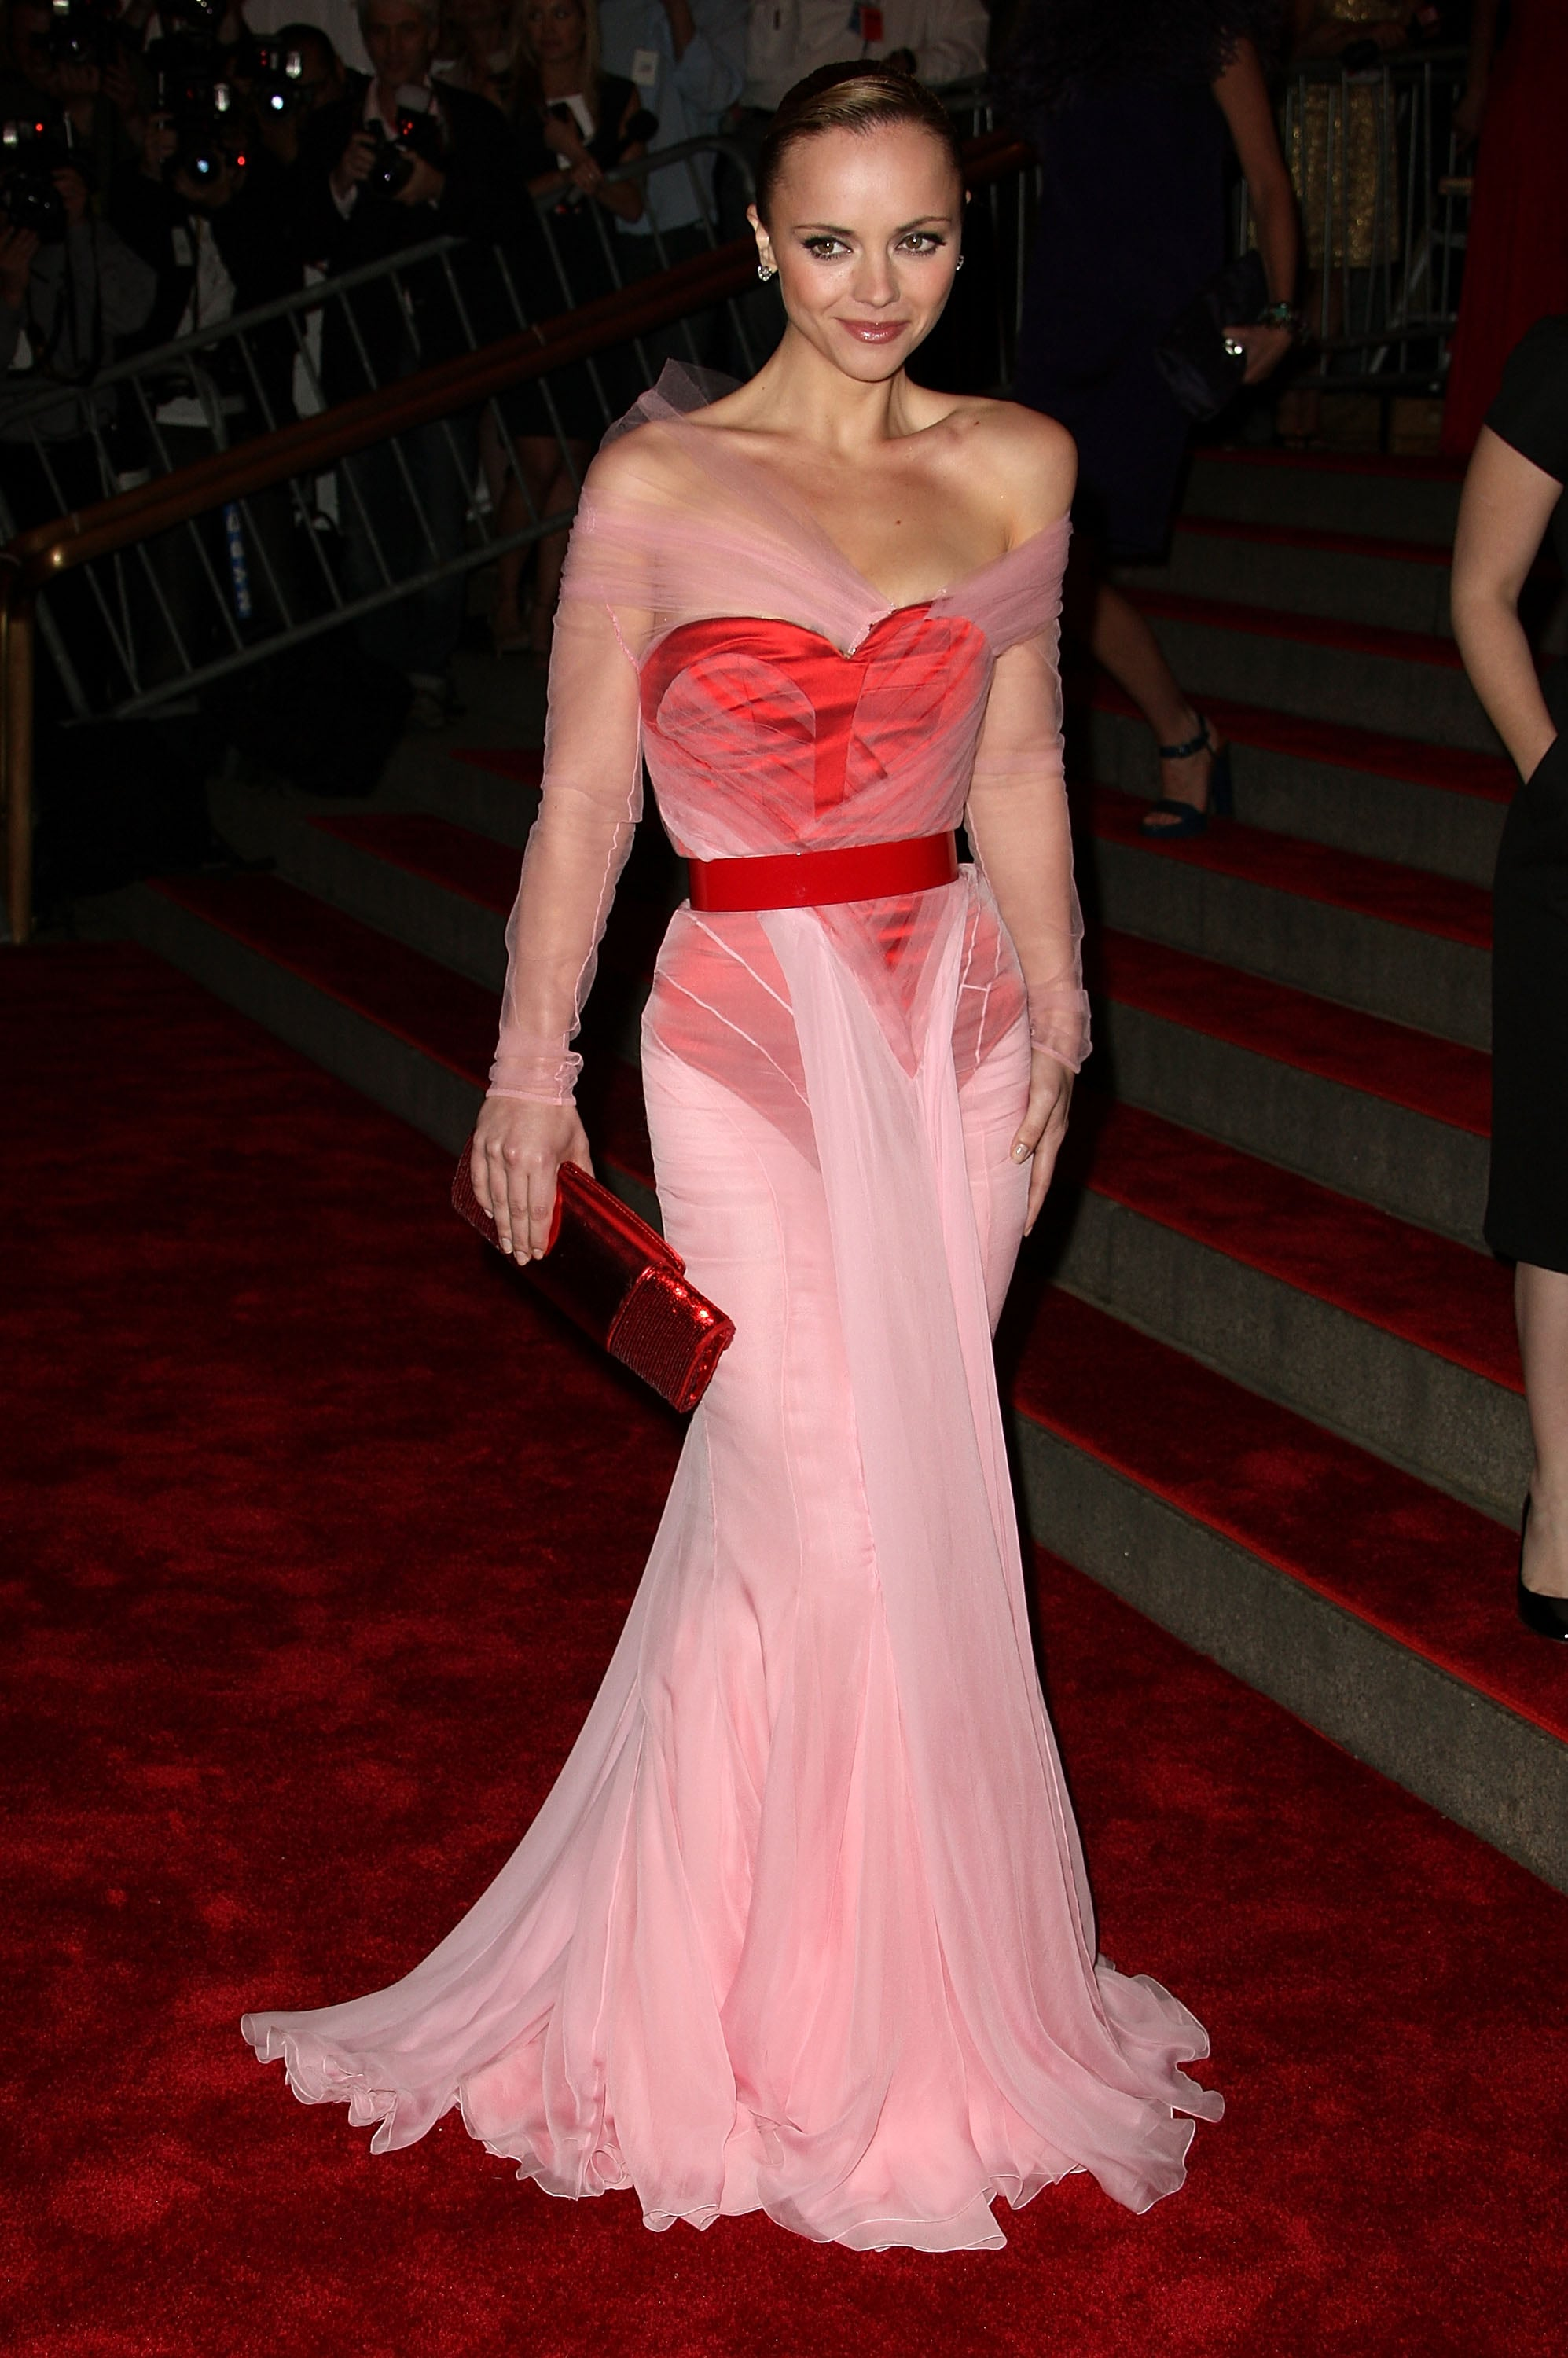 Christina Ricci at the 2008 Met Gala